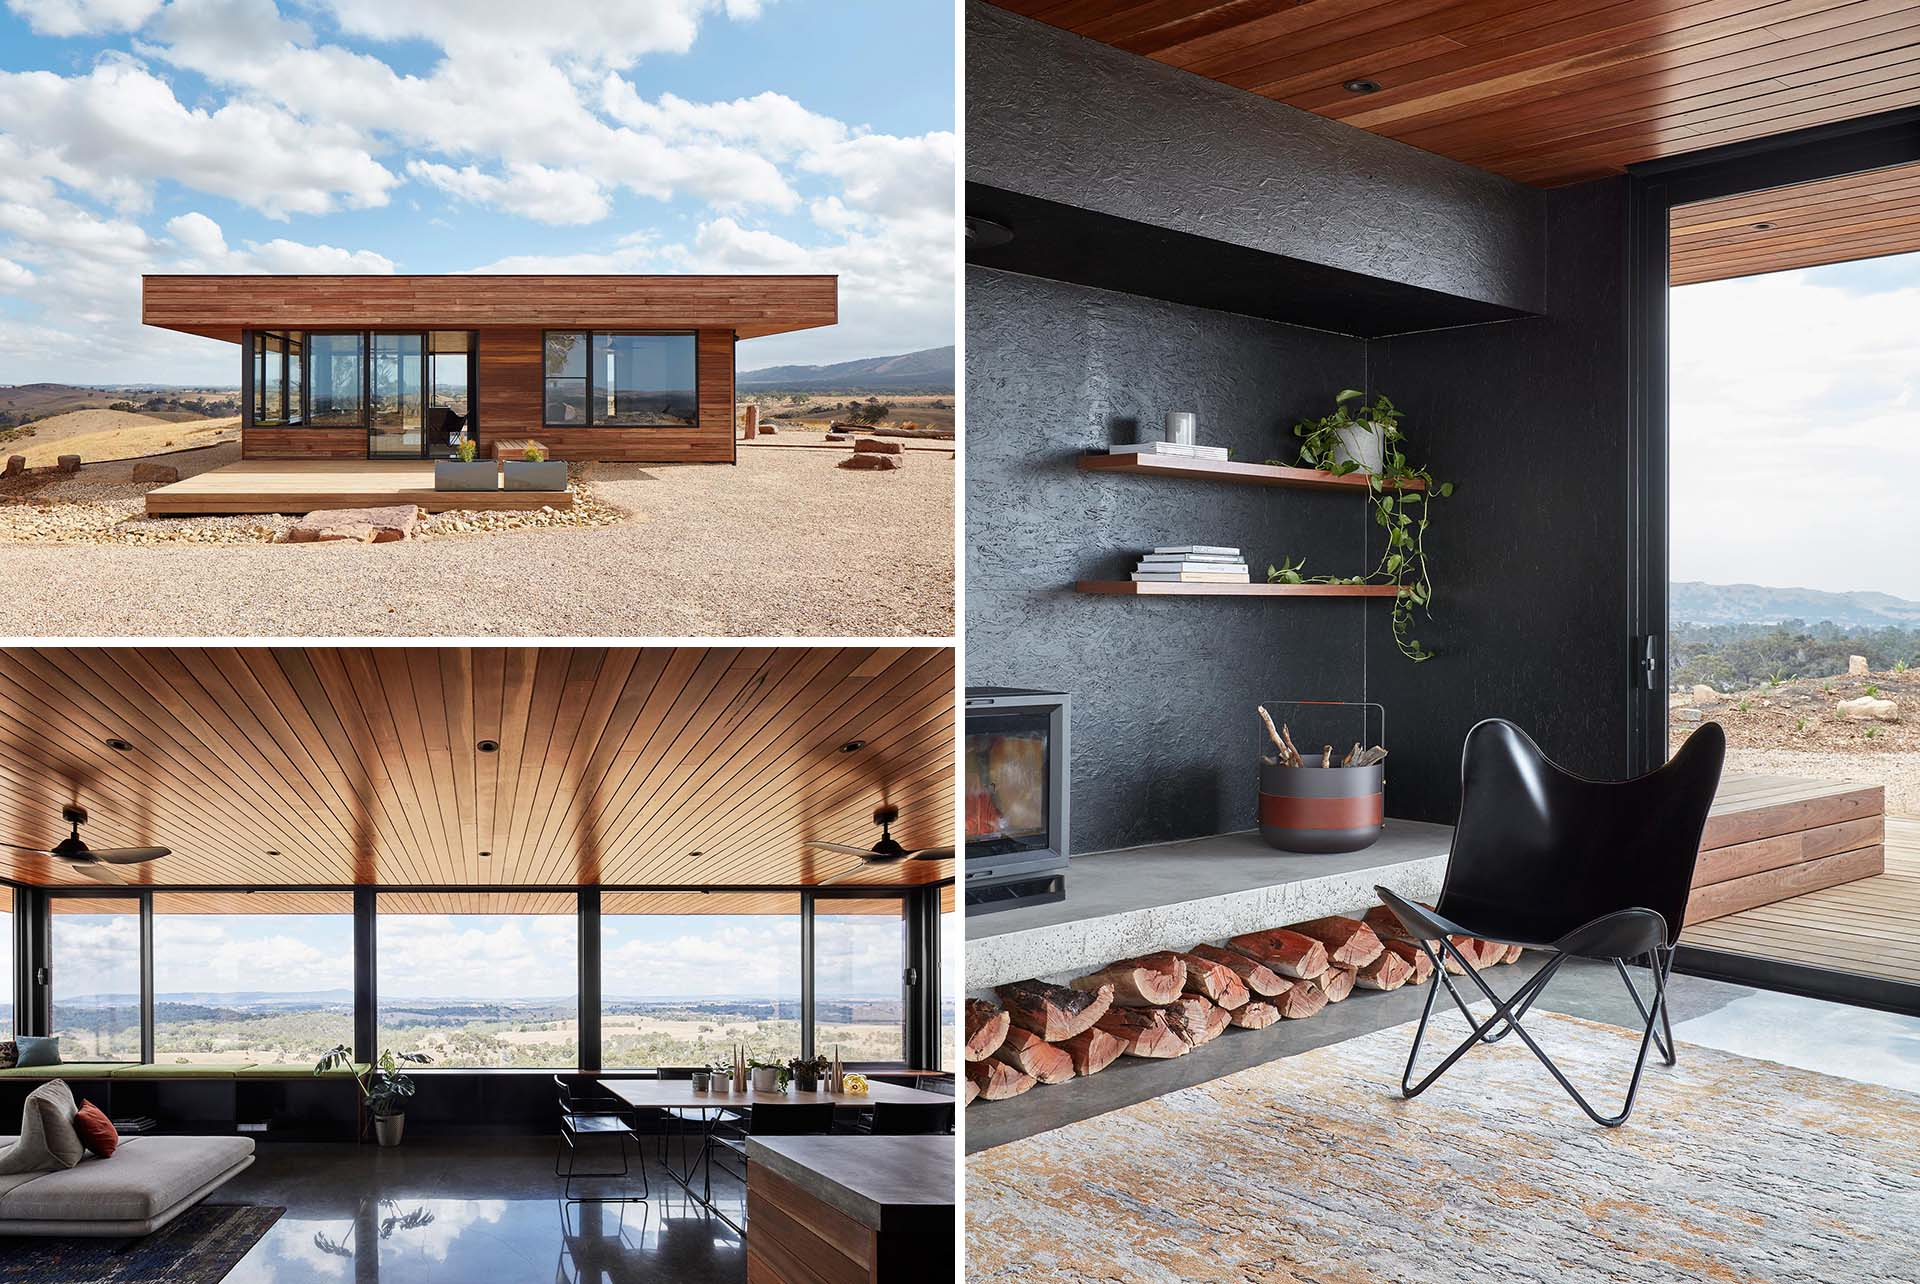 A modern and small house designed as a self-sufficient rural retreat with a minimal environmental footprint.